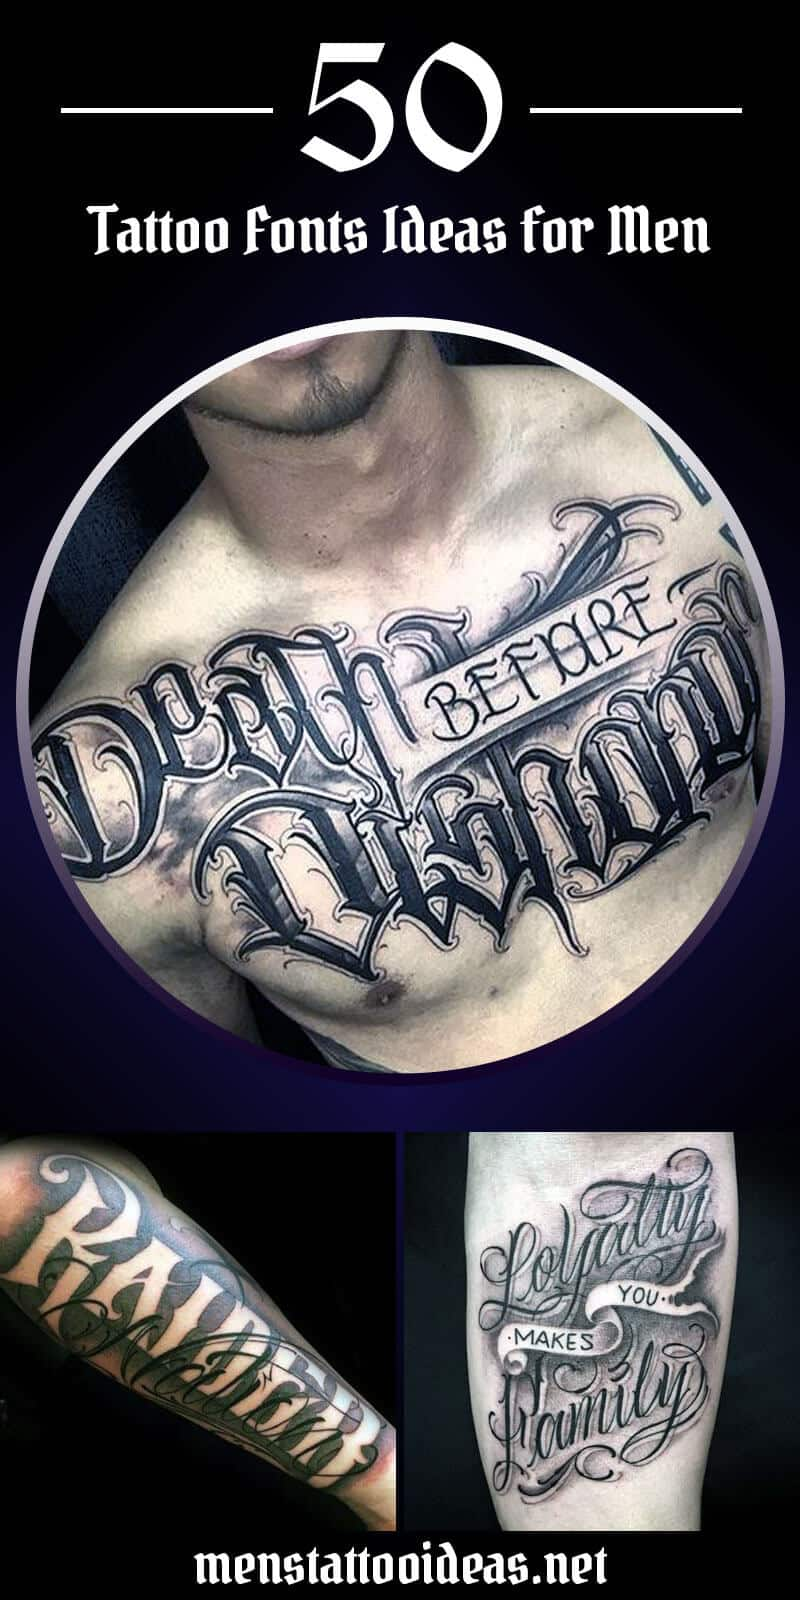 Best Calligraphy Tattoo Tattoo Fonts Ideas For Men Ideas And Designs For Guys